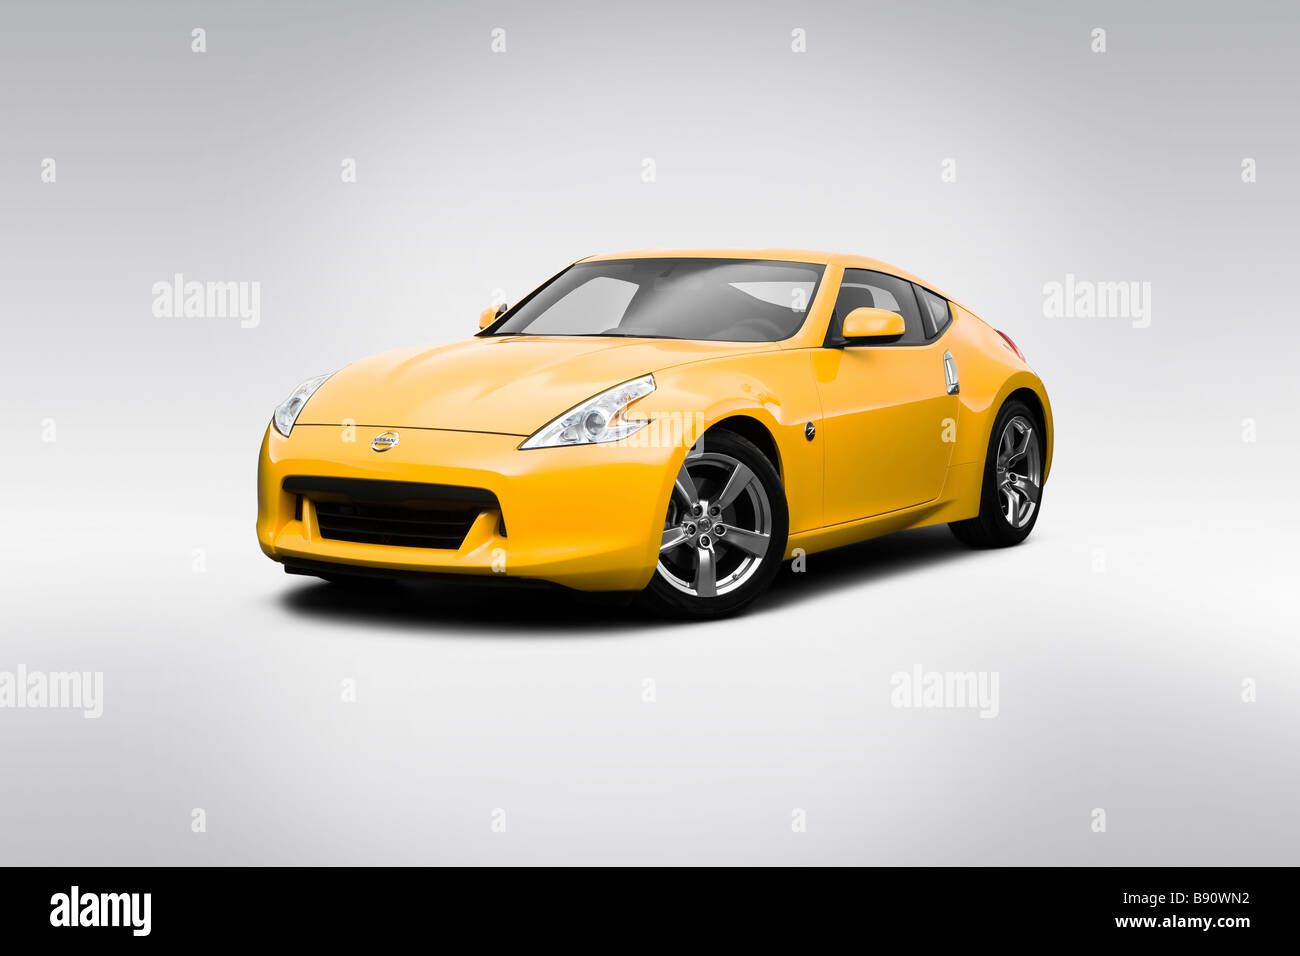 2009 nissan 370z in yellow front angle view stock photo alamy https www alamy com stock photo 2009 nissan 370z in yellow front angle view 22762462 html